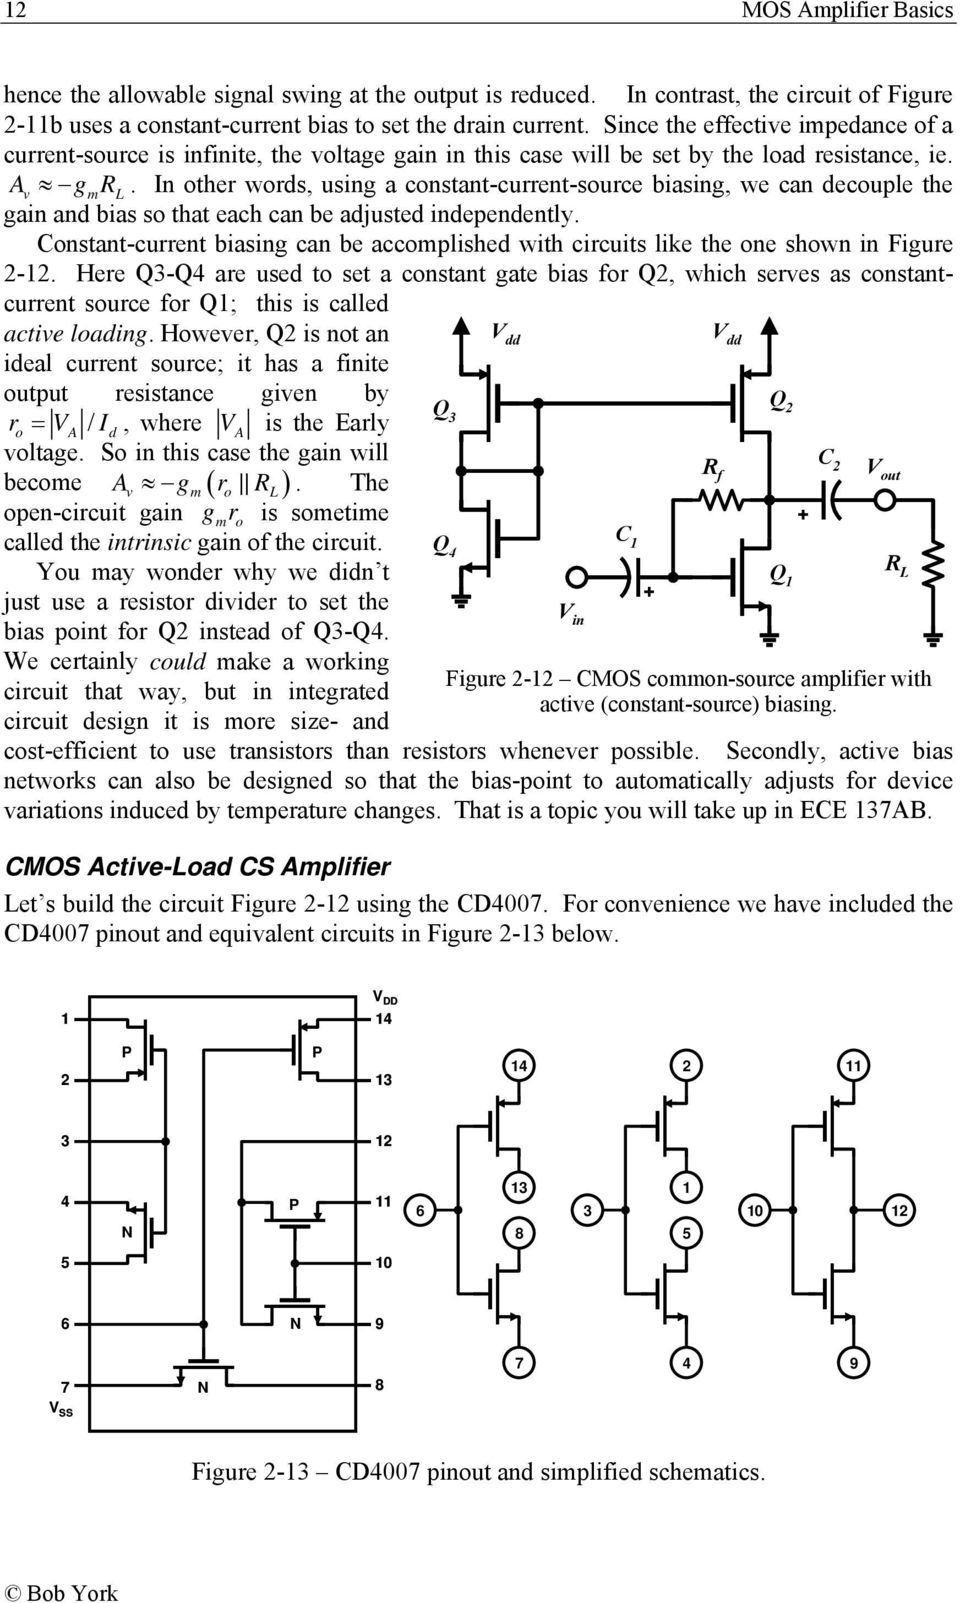 Mos Amplifier Basics Pdf Fig 1 Basic Accoupling Circuit In Other Wors Using A Constant Current Source Biasing We Can Ecouple